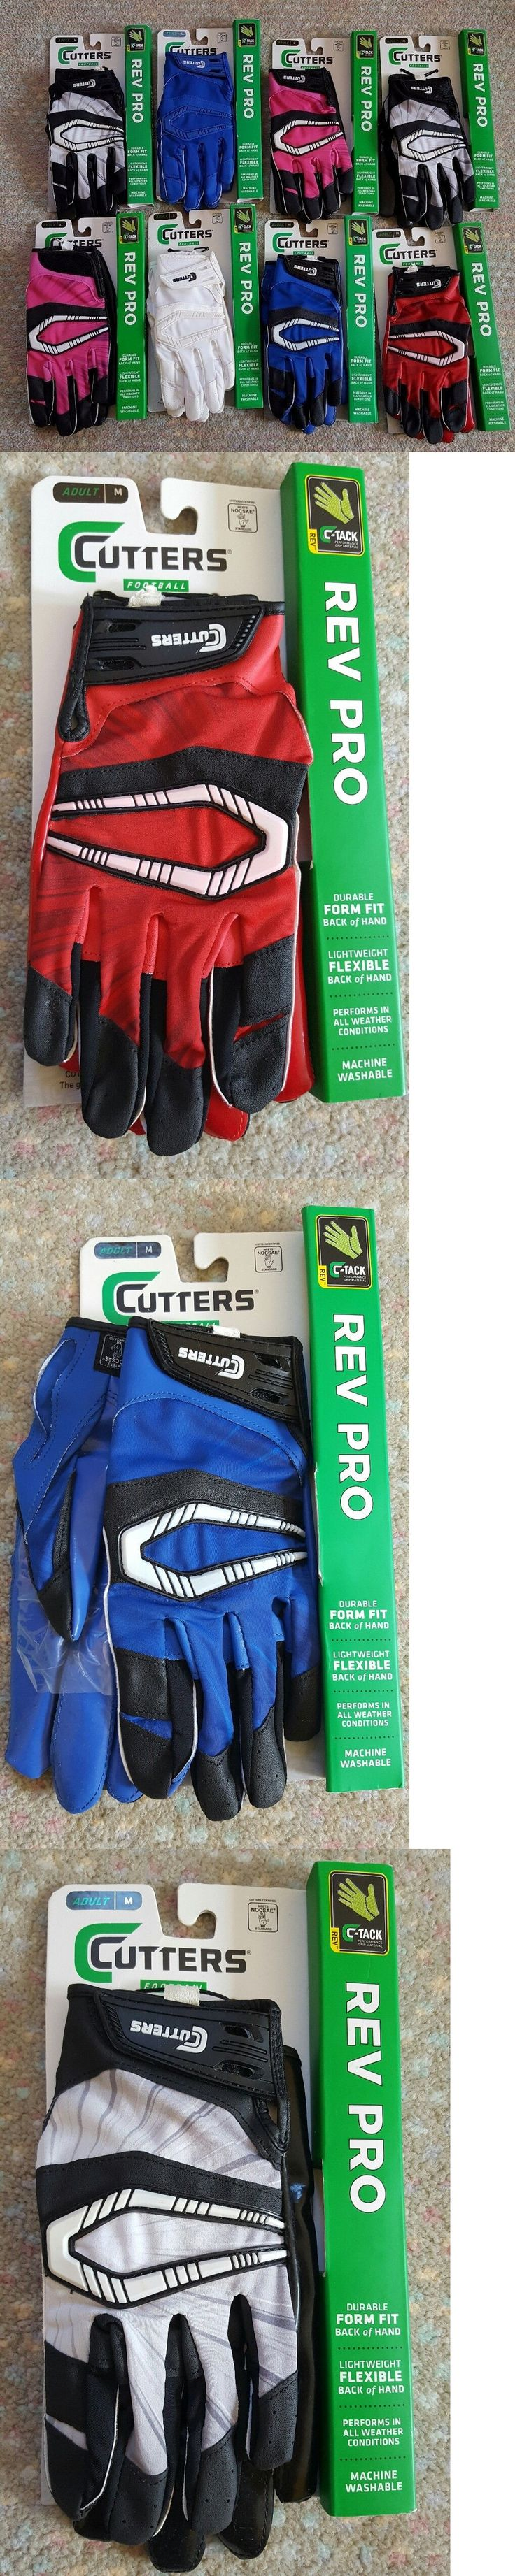 Gloves 159114: Cutters S450 Rev Pro C-Tack Mens Football Receiver Gloves Adult Sz M L Xl New ! -> BUY IT NOW ONLY: $39.95 on eBay!